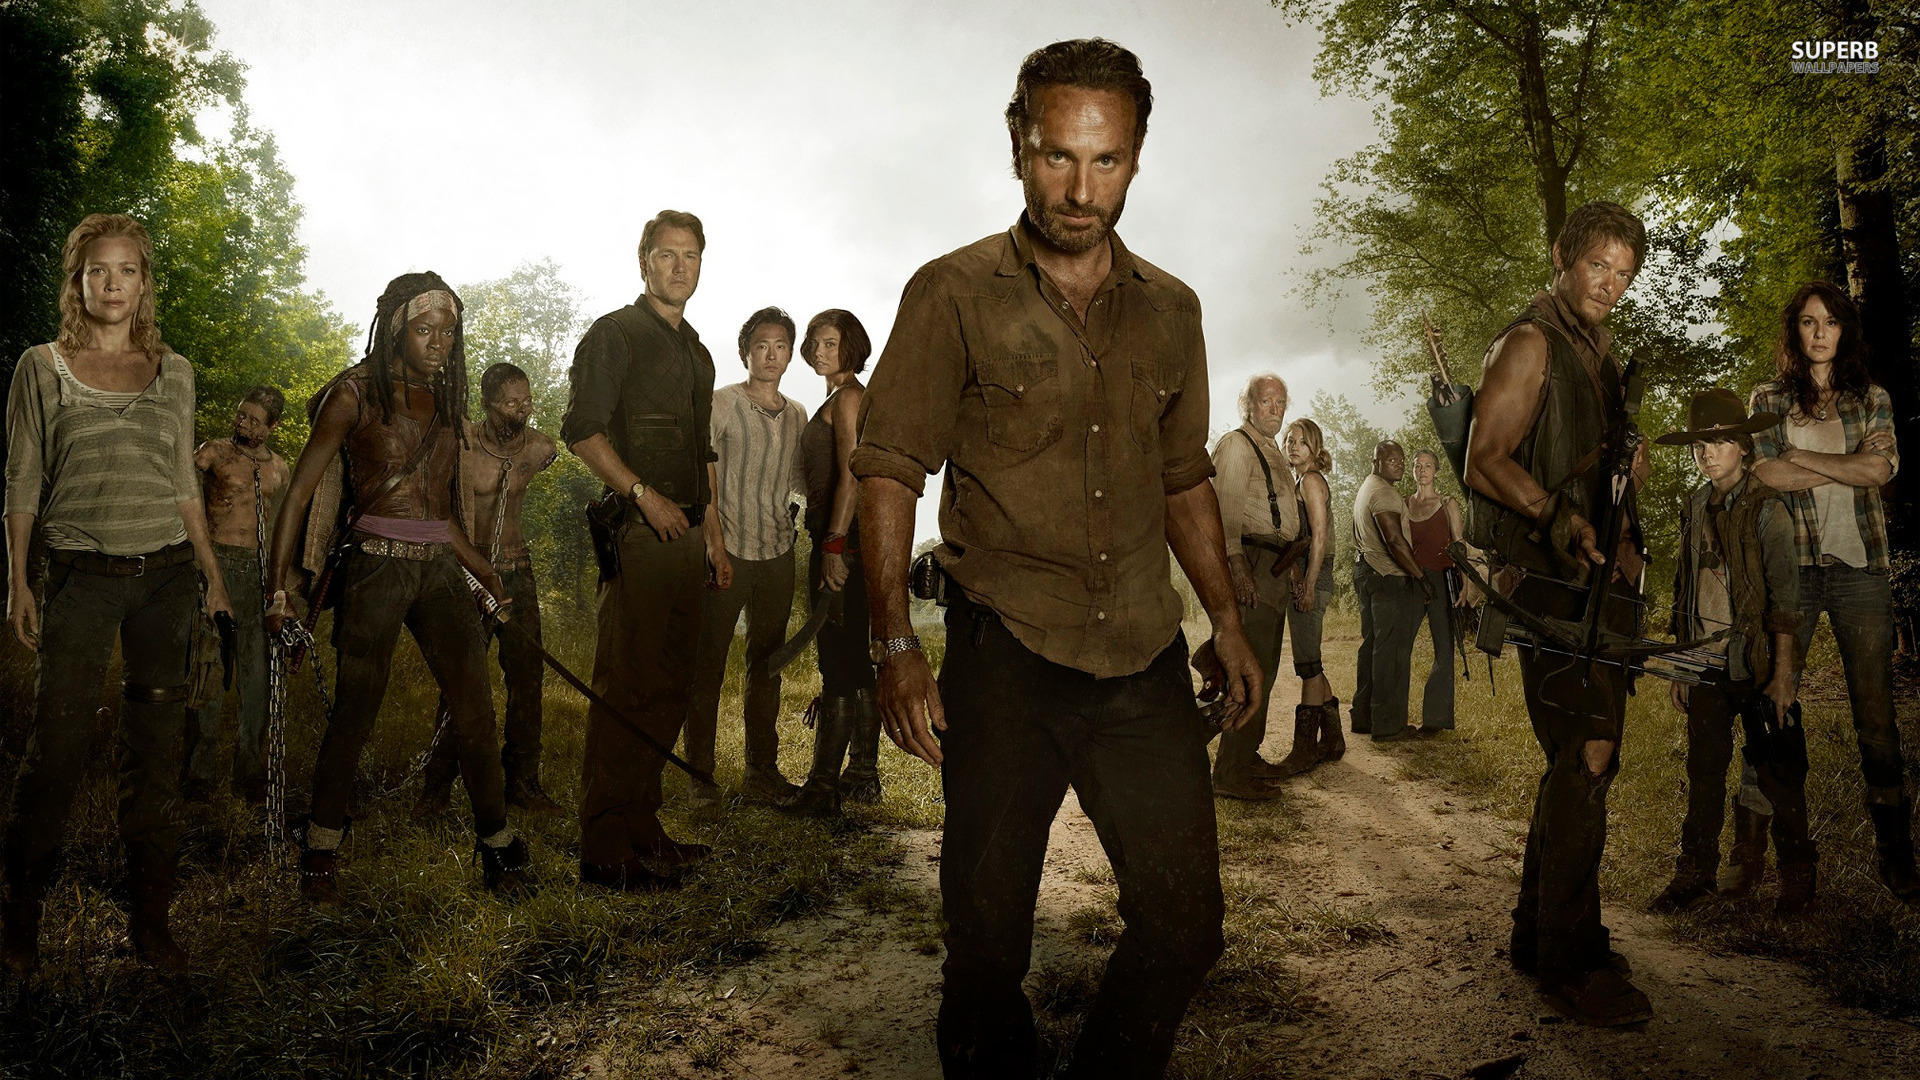 Download The Walking Dead Wallpaper at 1920 x 1080 Resolution 1920x1080